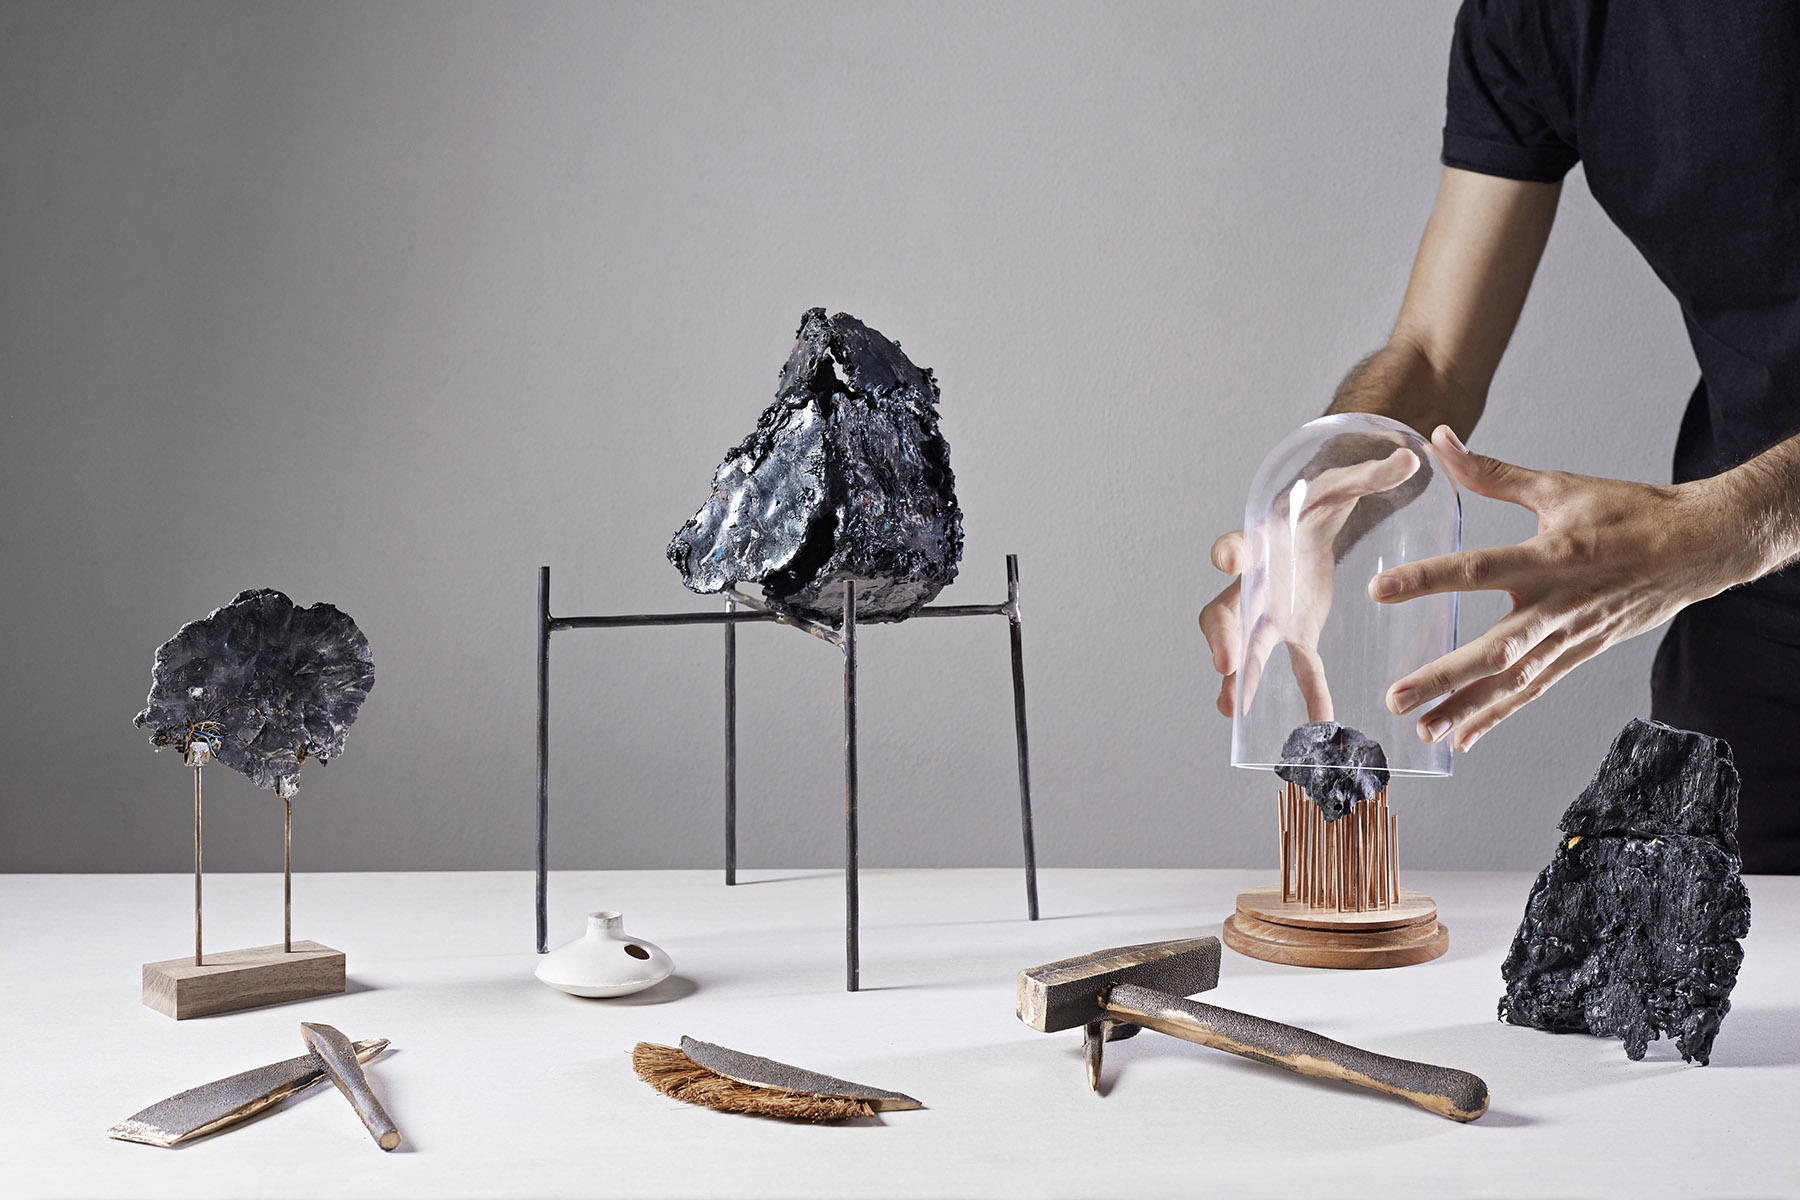 Metamorphism by Shahar Livne , Photography by Ronald Smits